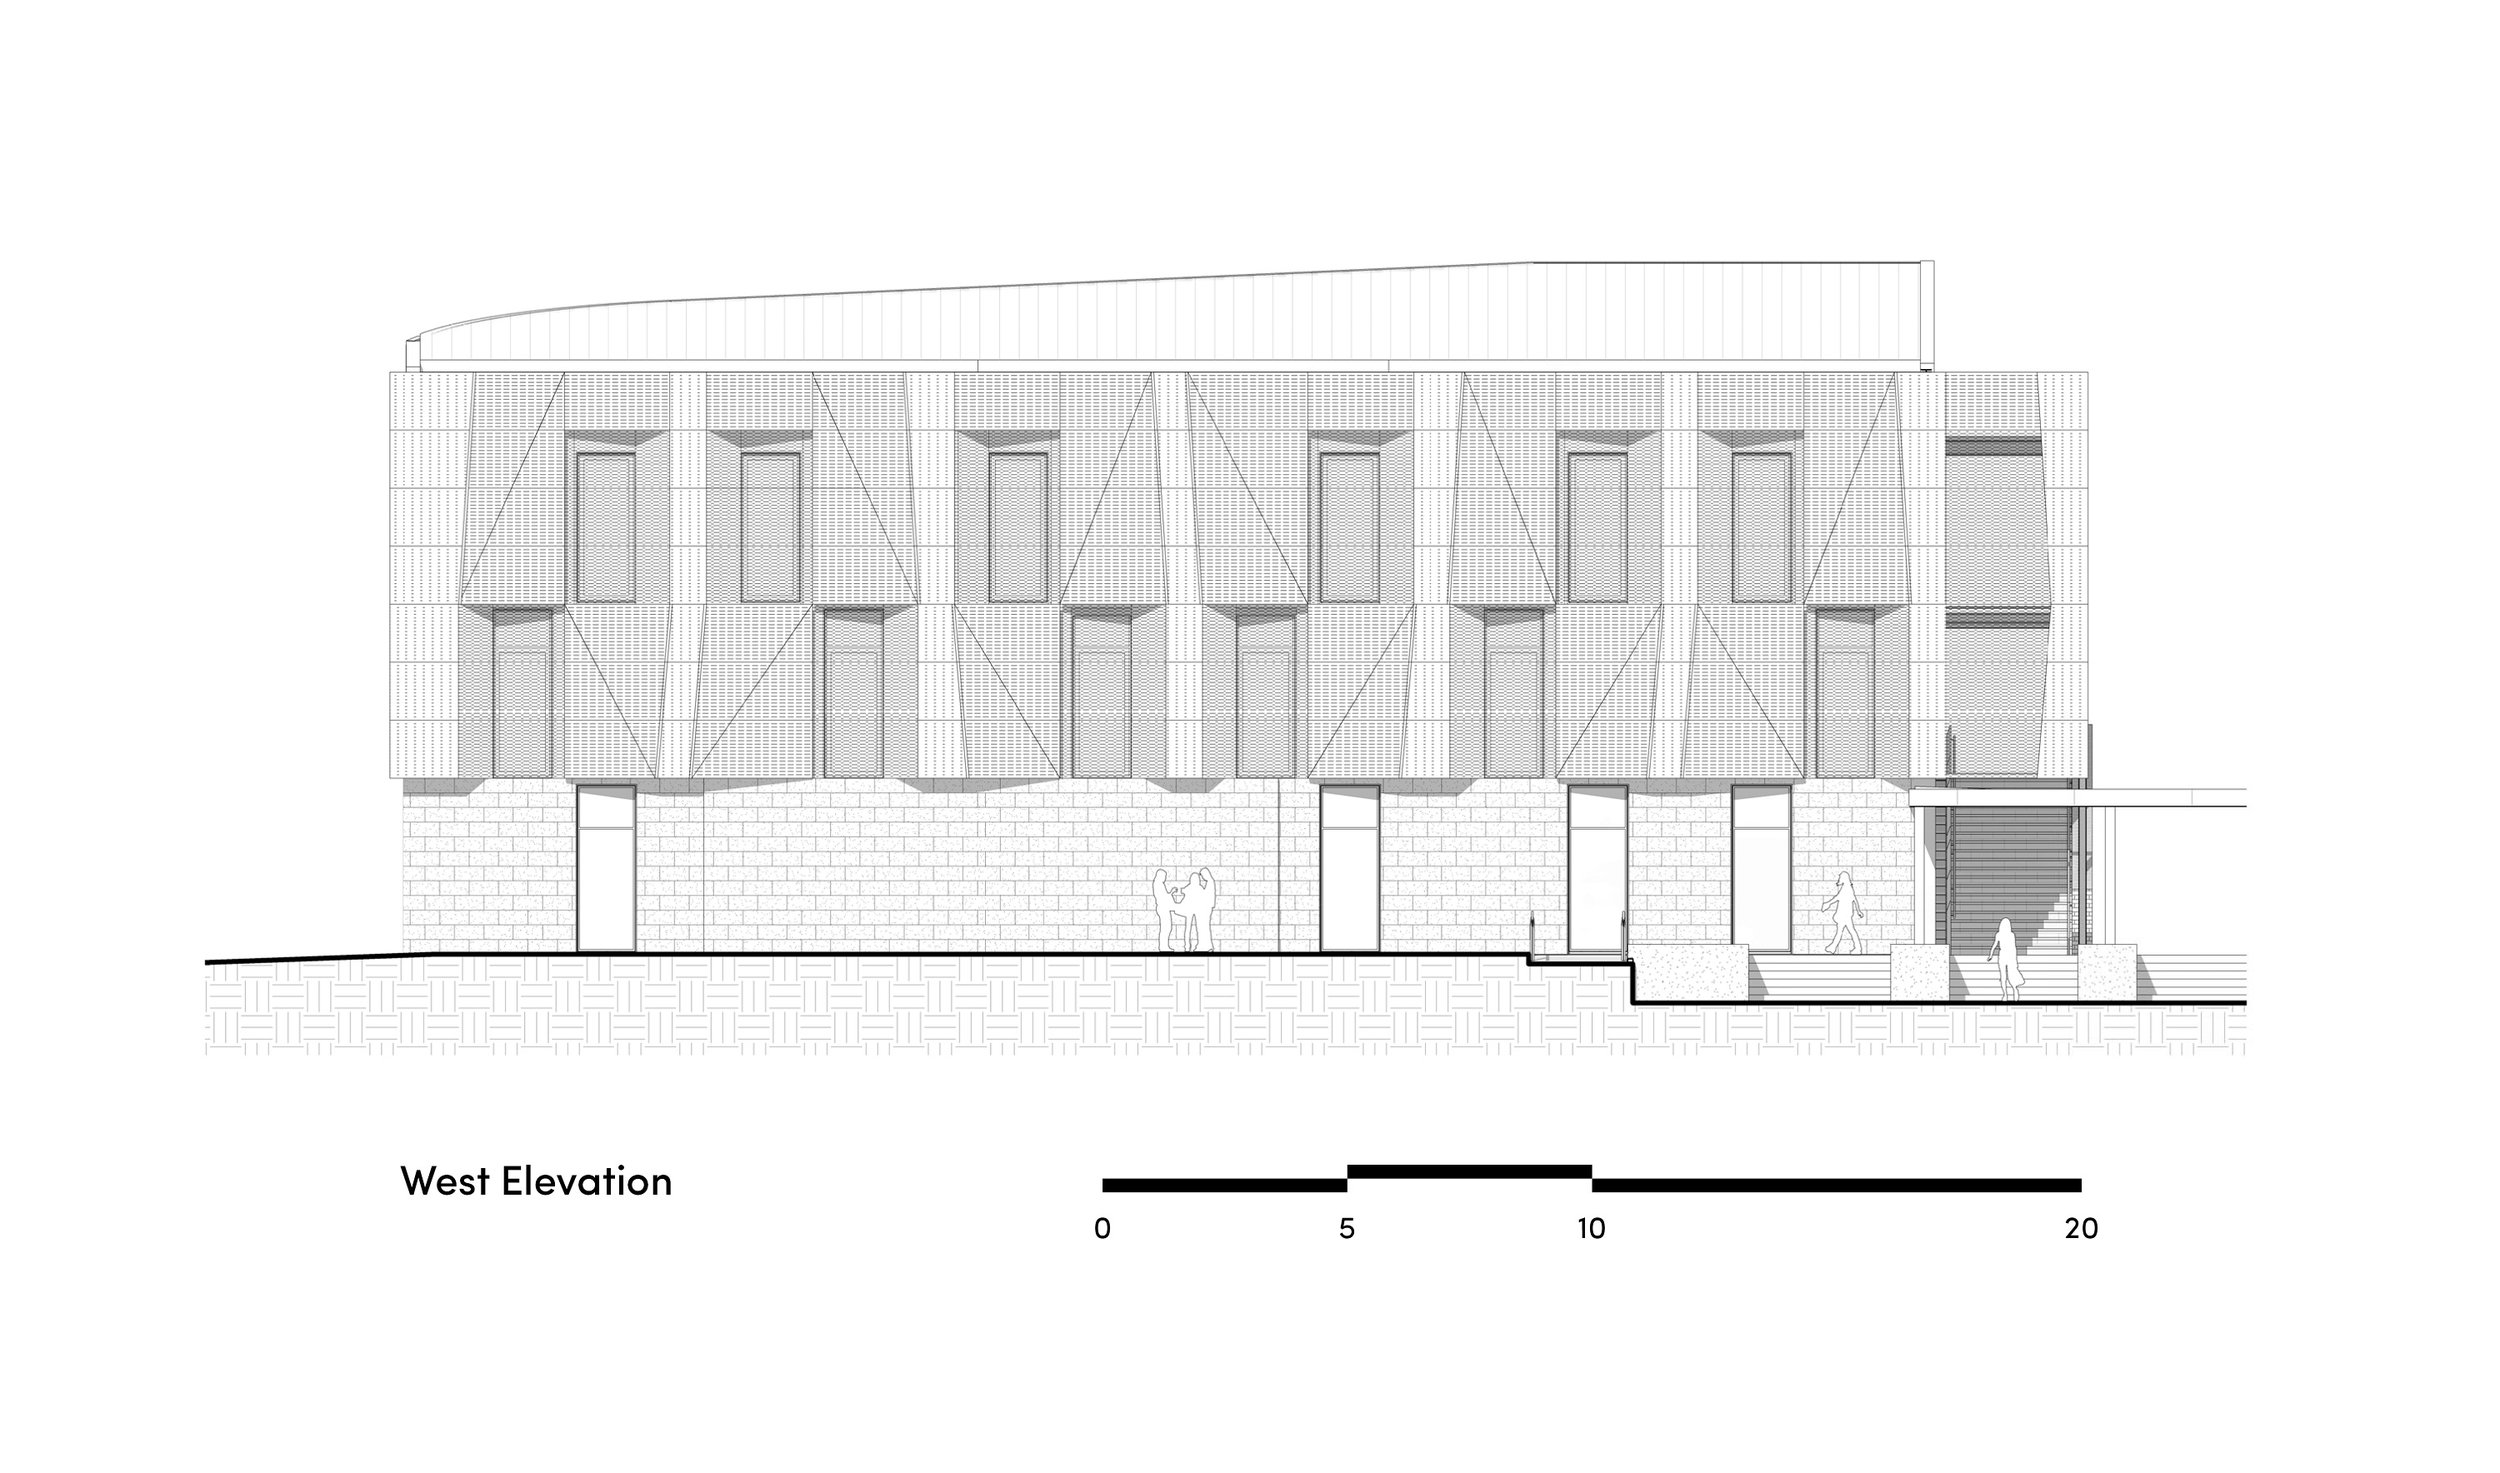 06_West Elevation.jpg